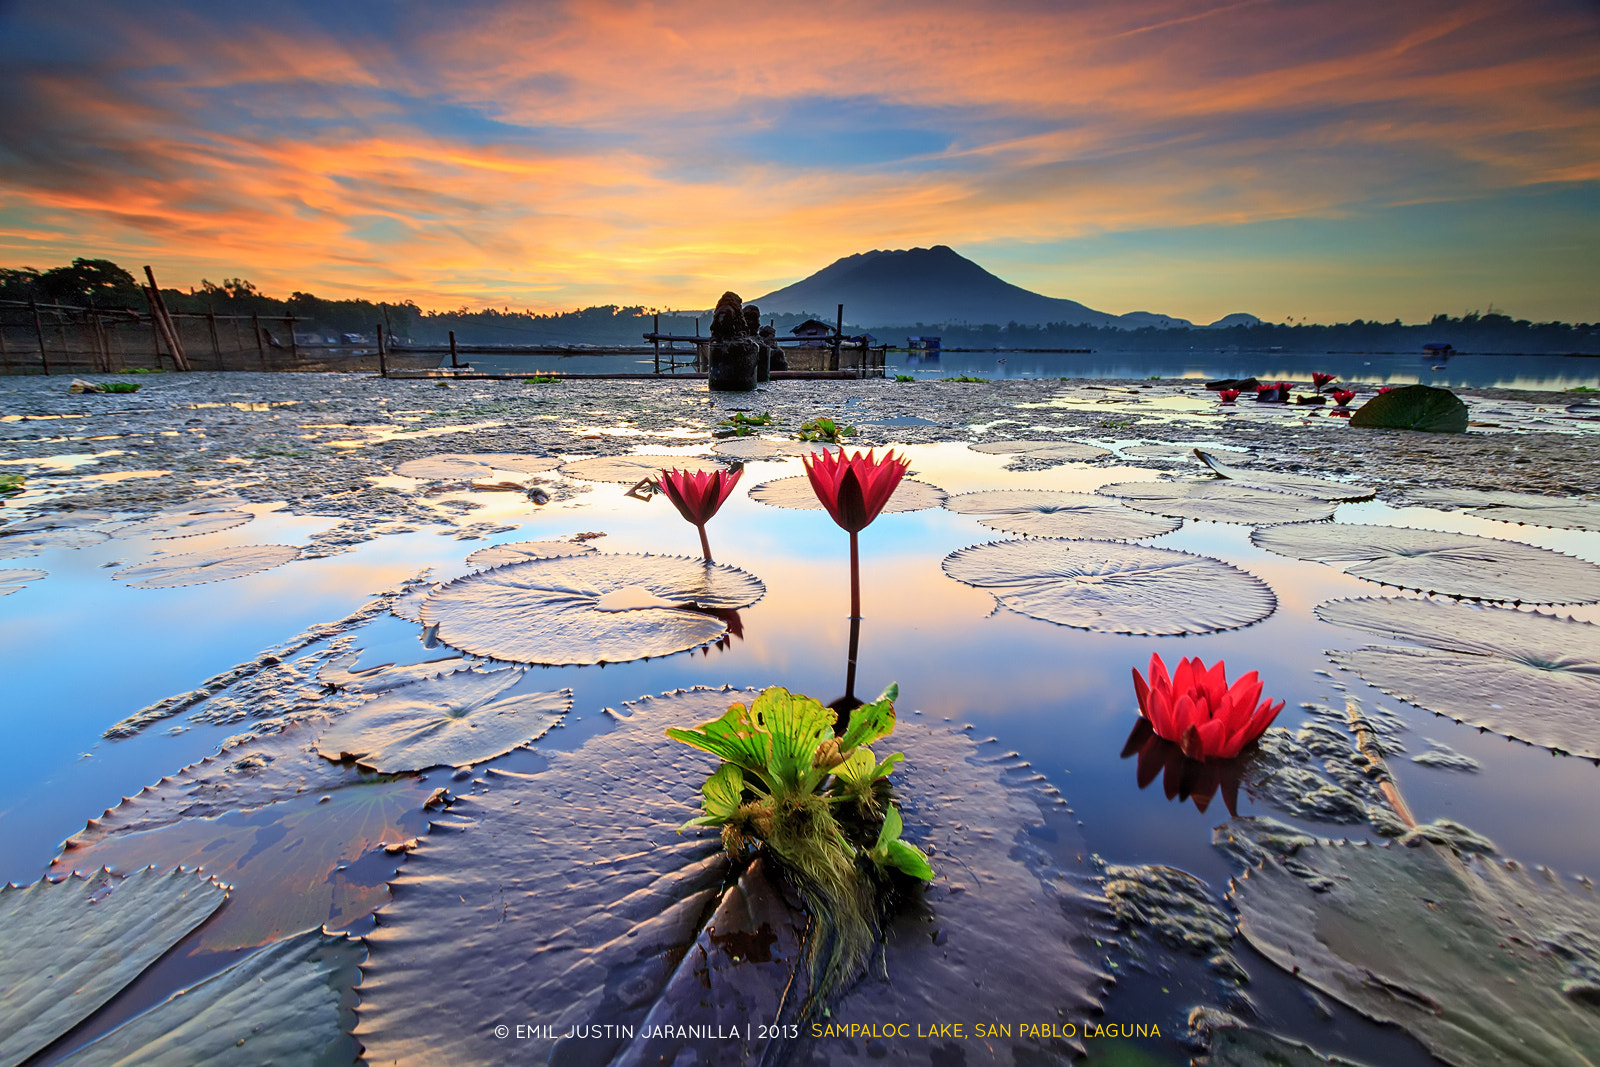 Photograph Lilies and Lotus by Emil Justin Jaranilla on 500px